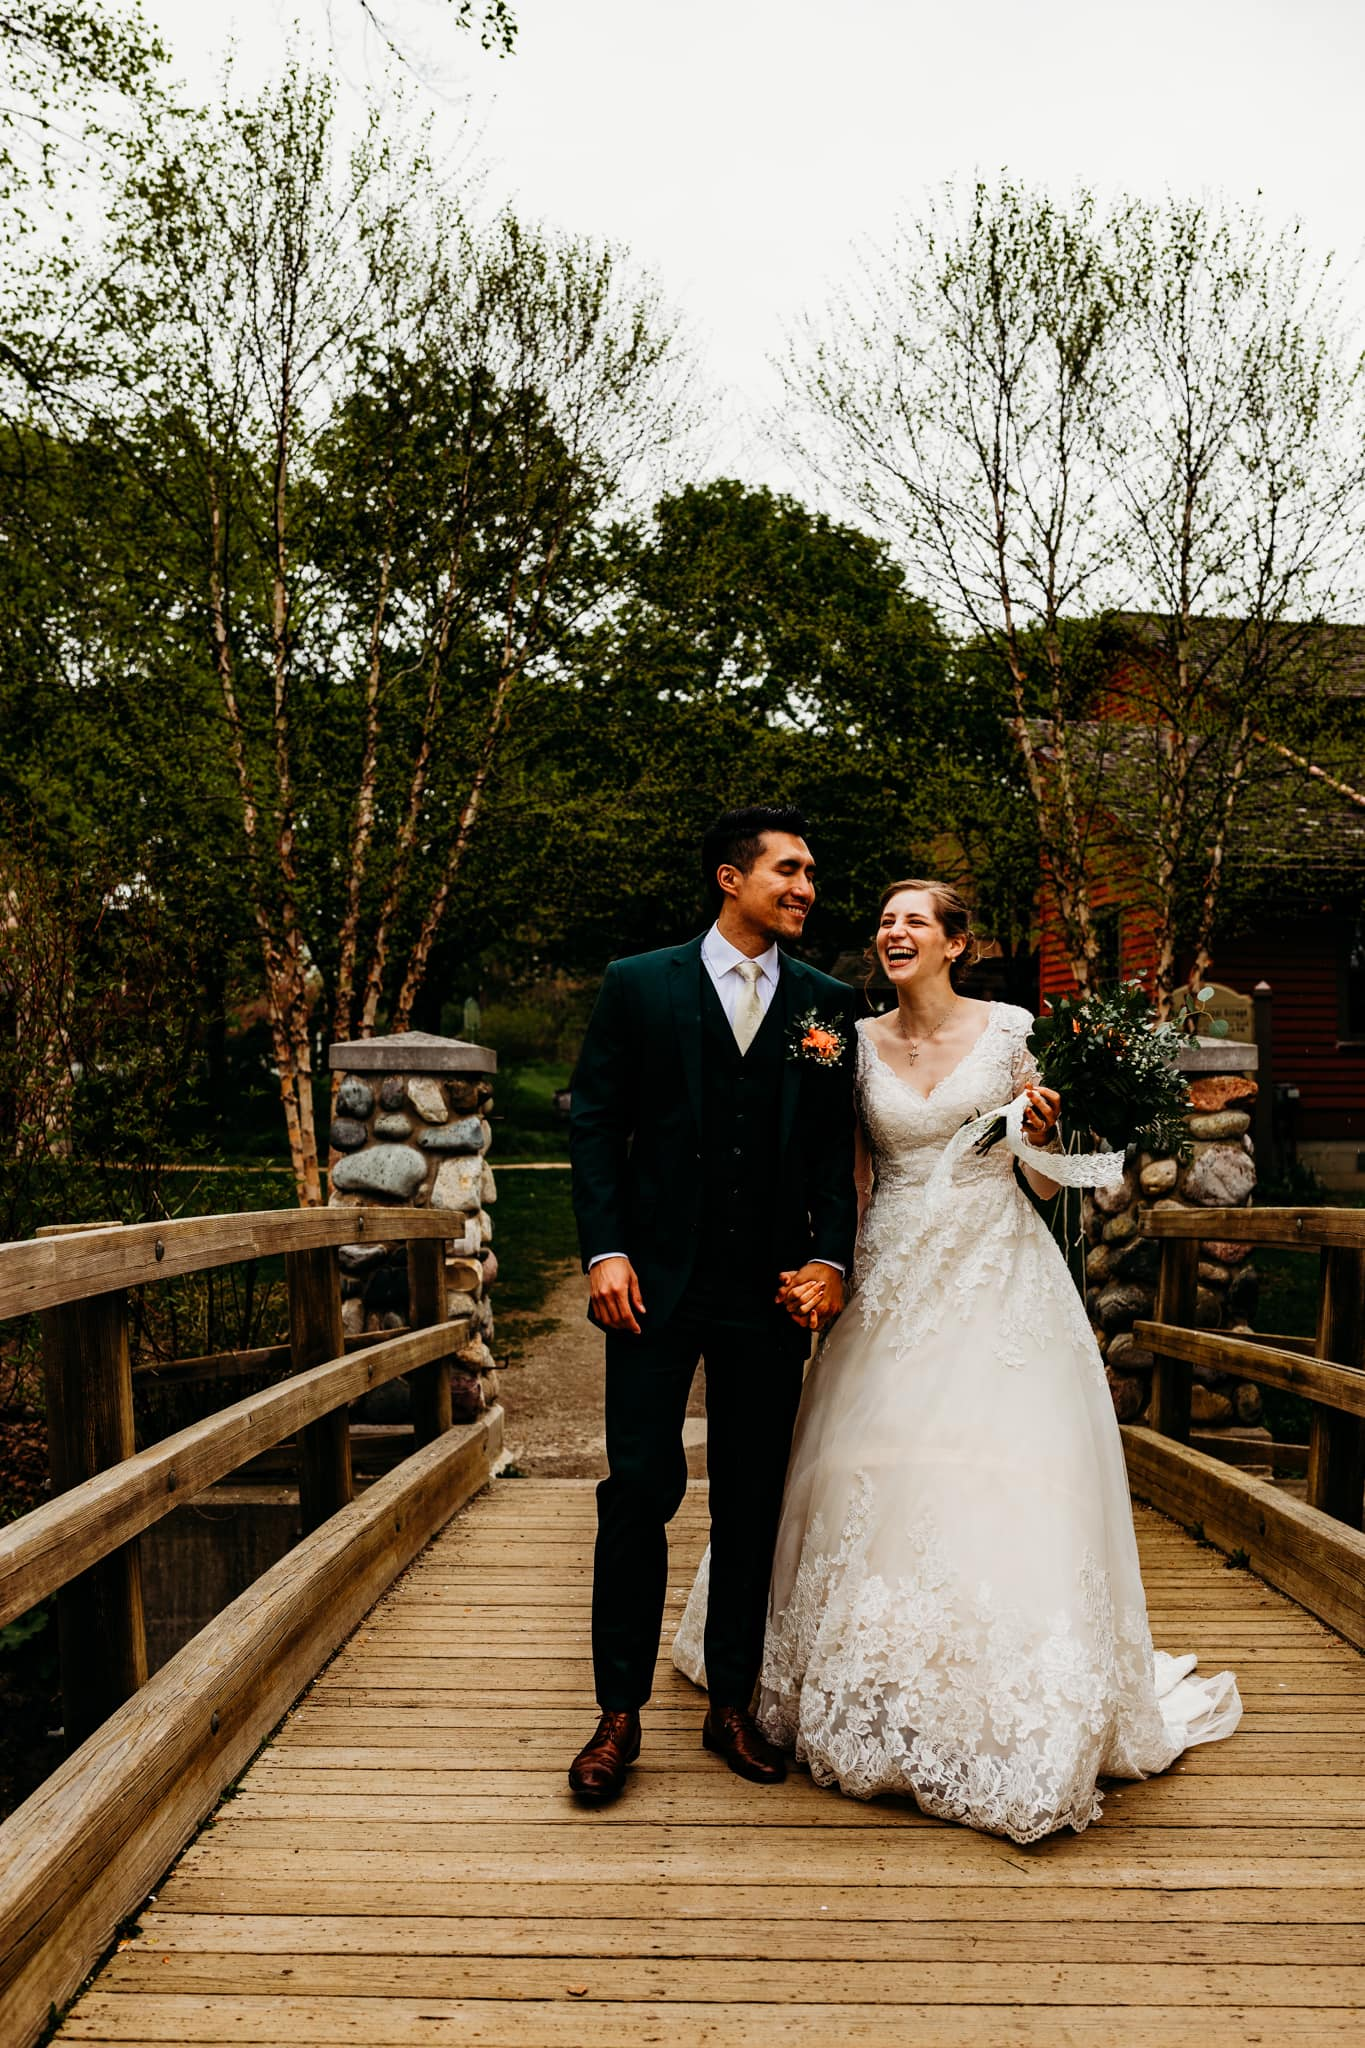 Newlyweds laugh on the bridge together that led to their Mill Race Village wedding